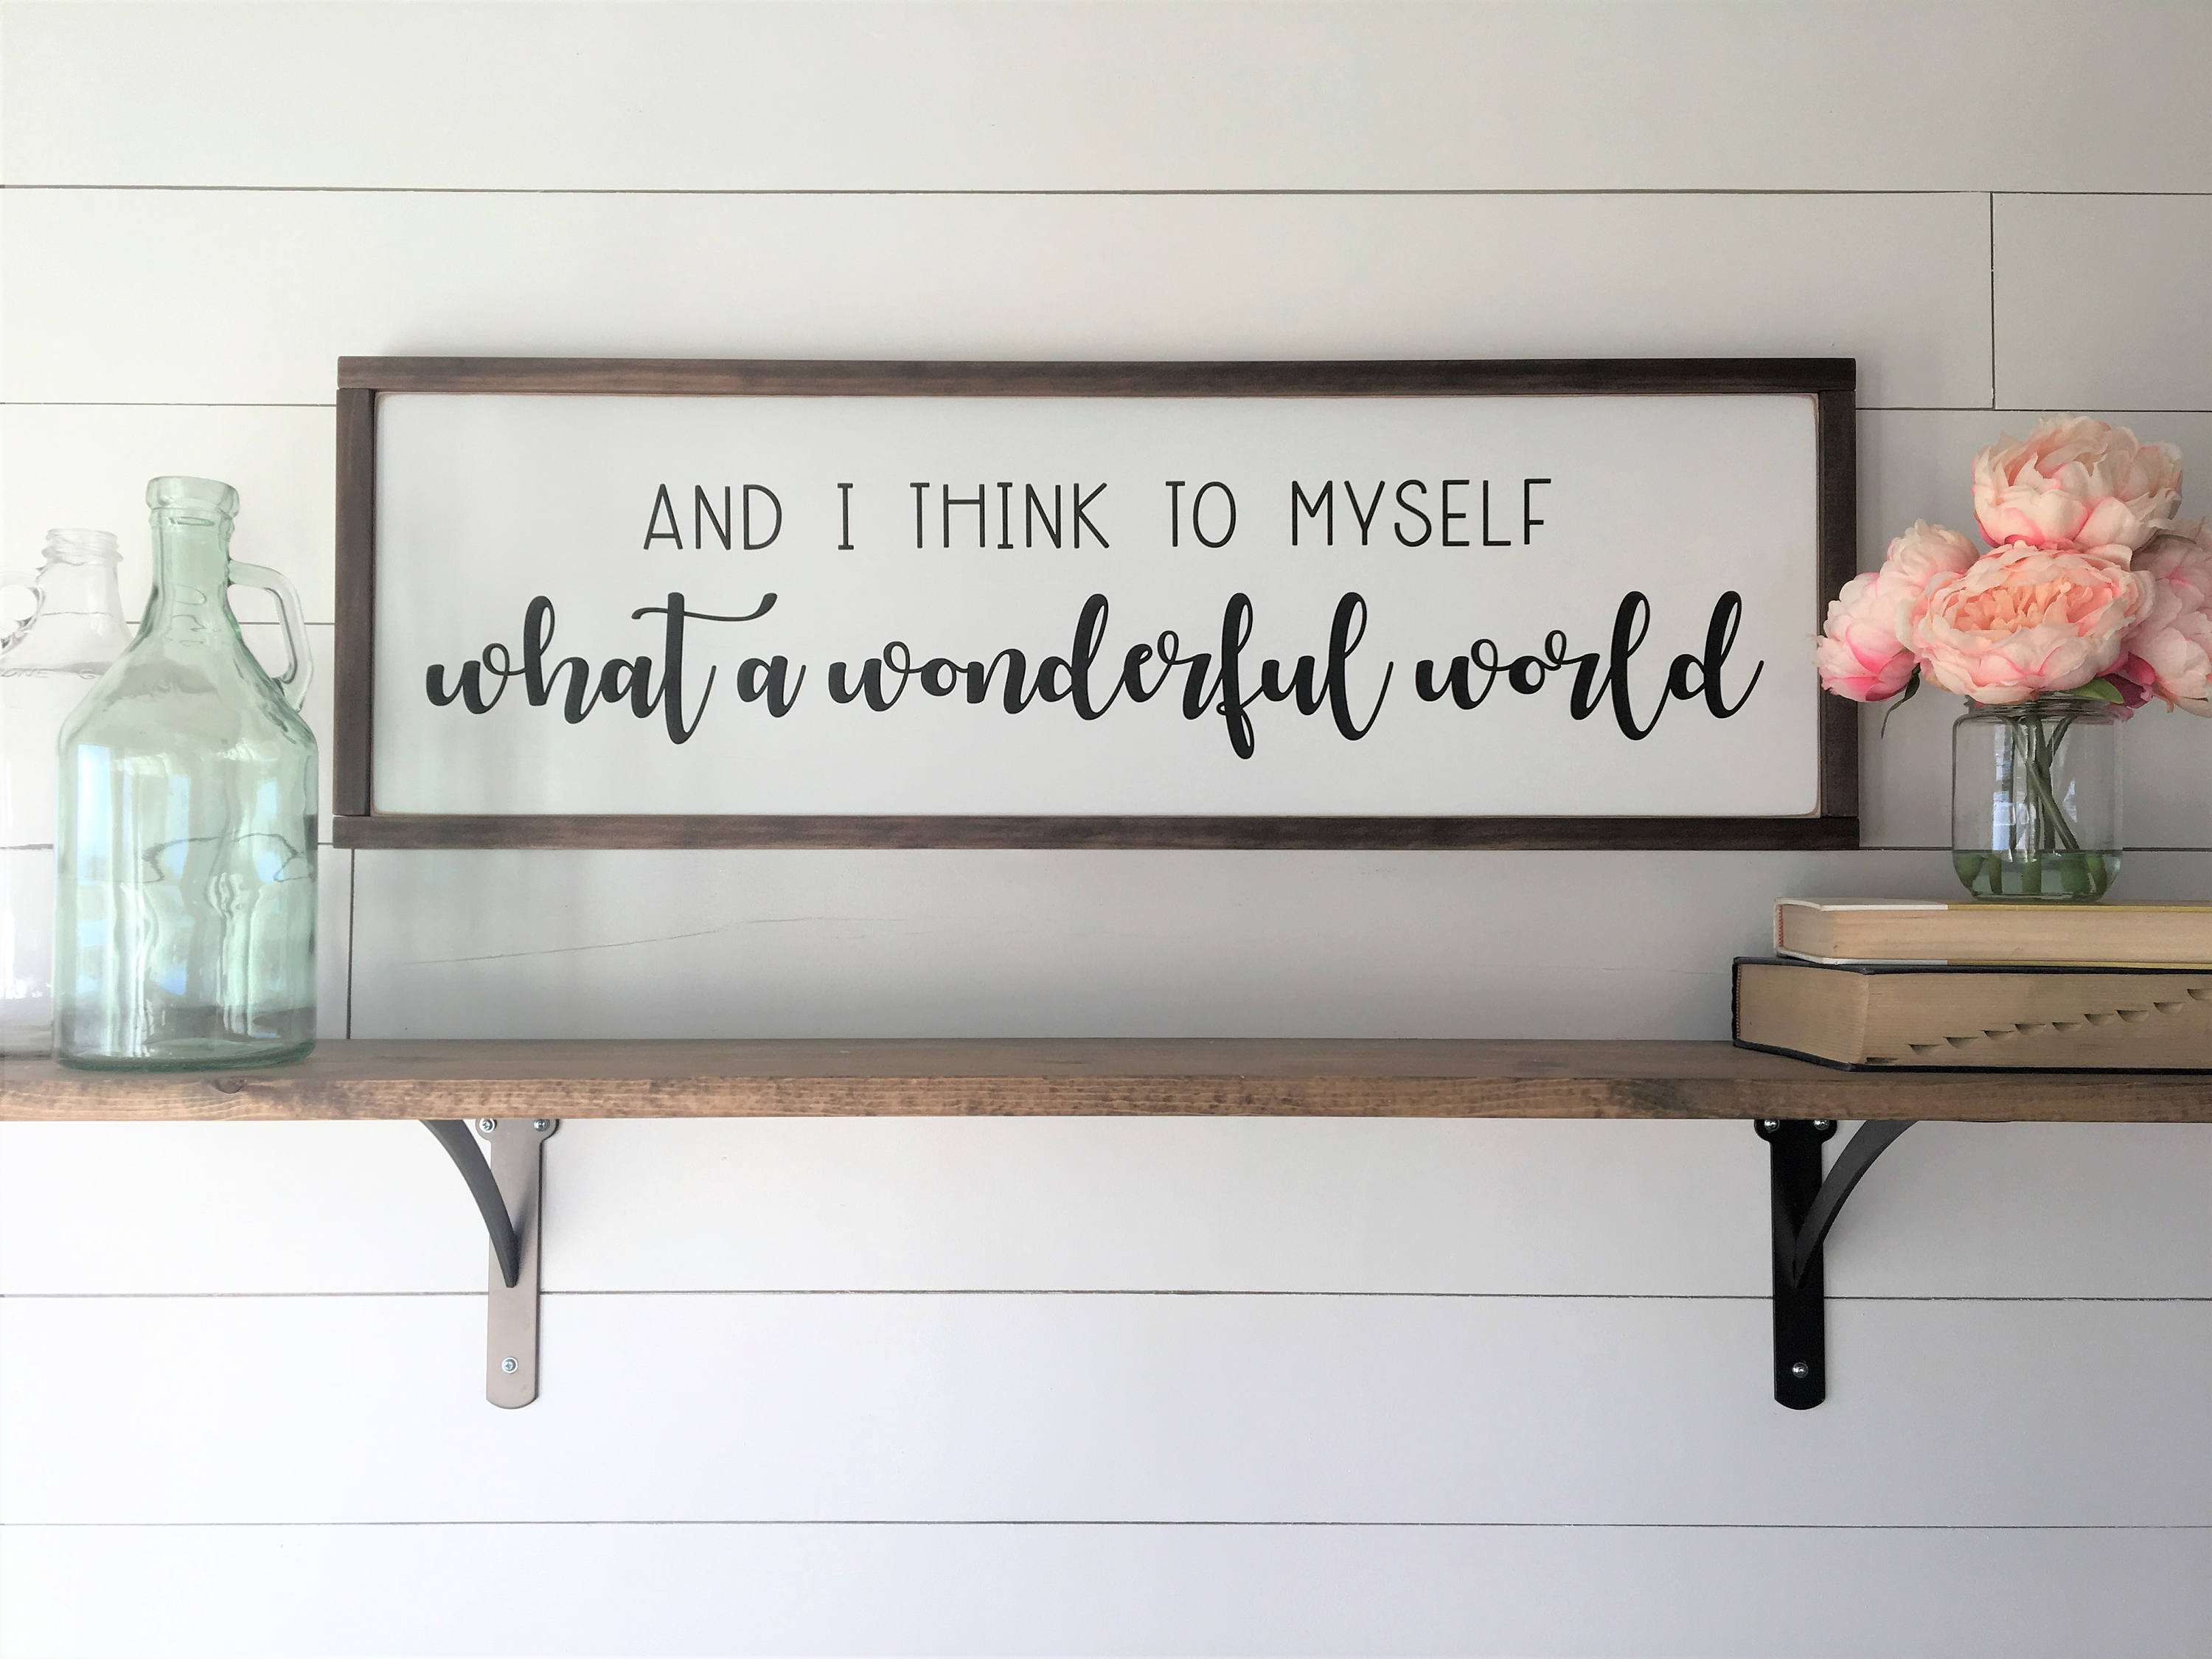 Etsy Pertaining To Wonderful World Wall Decor (View 11 of 20)